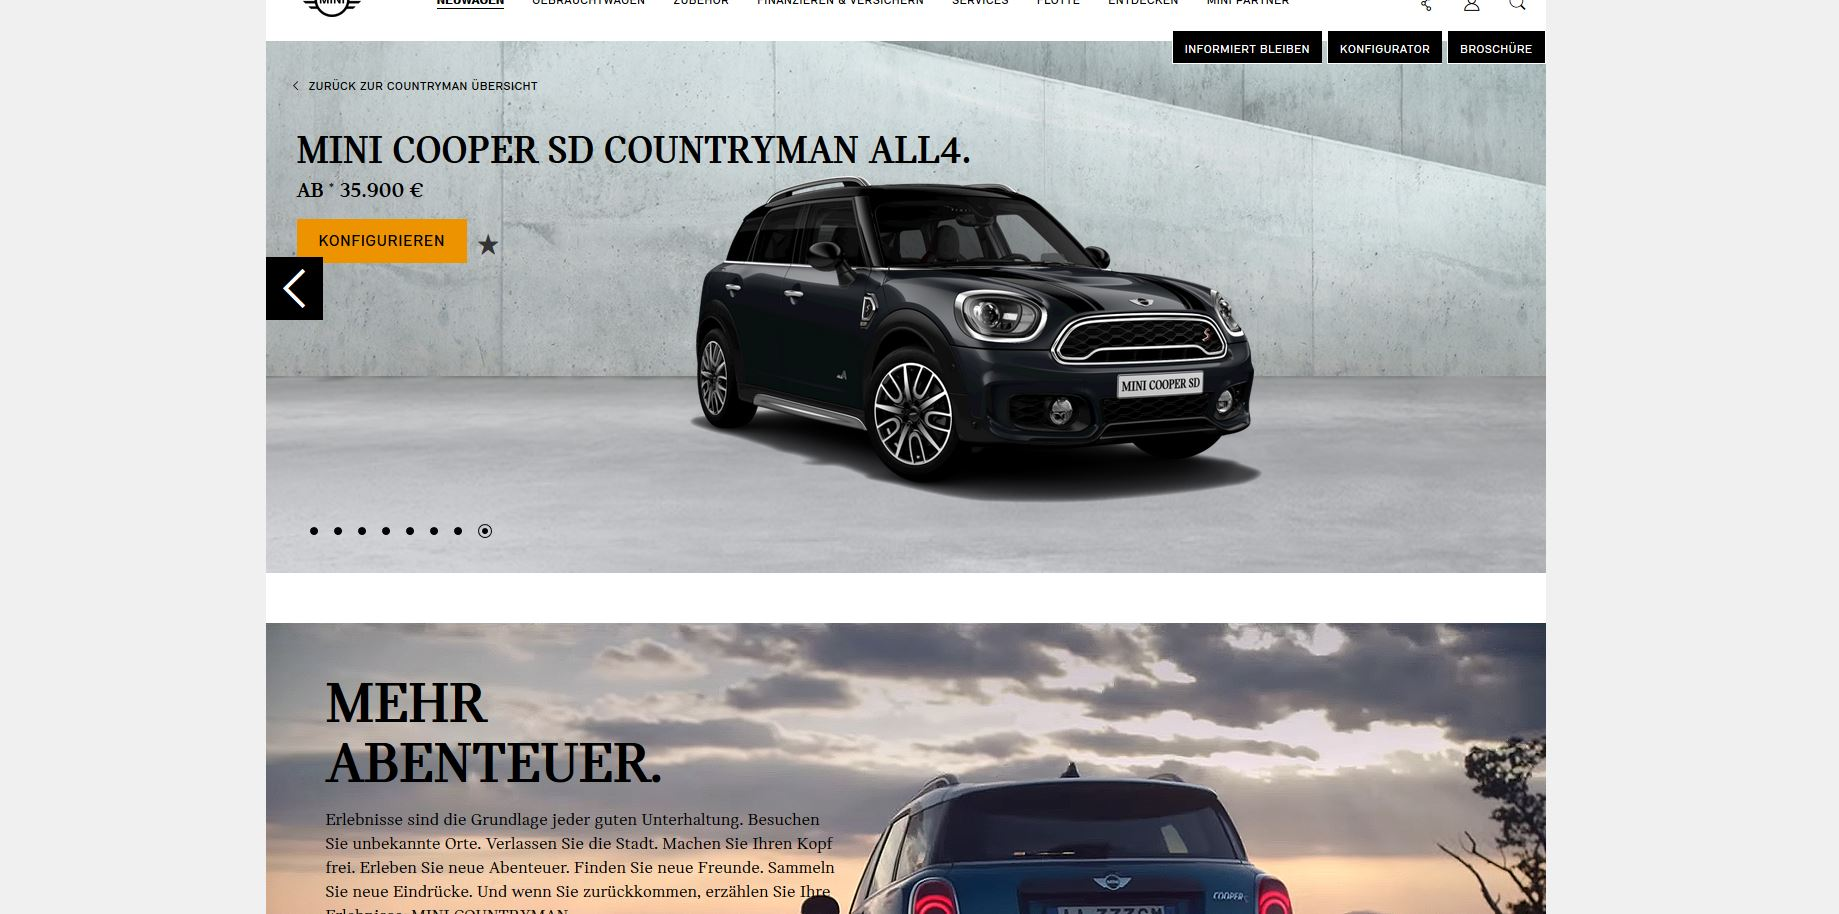 2017 Mini Countryman Configurator Launched 26500 For Base Cooper